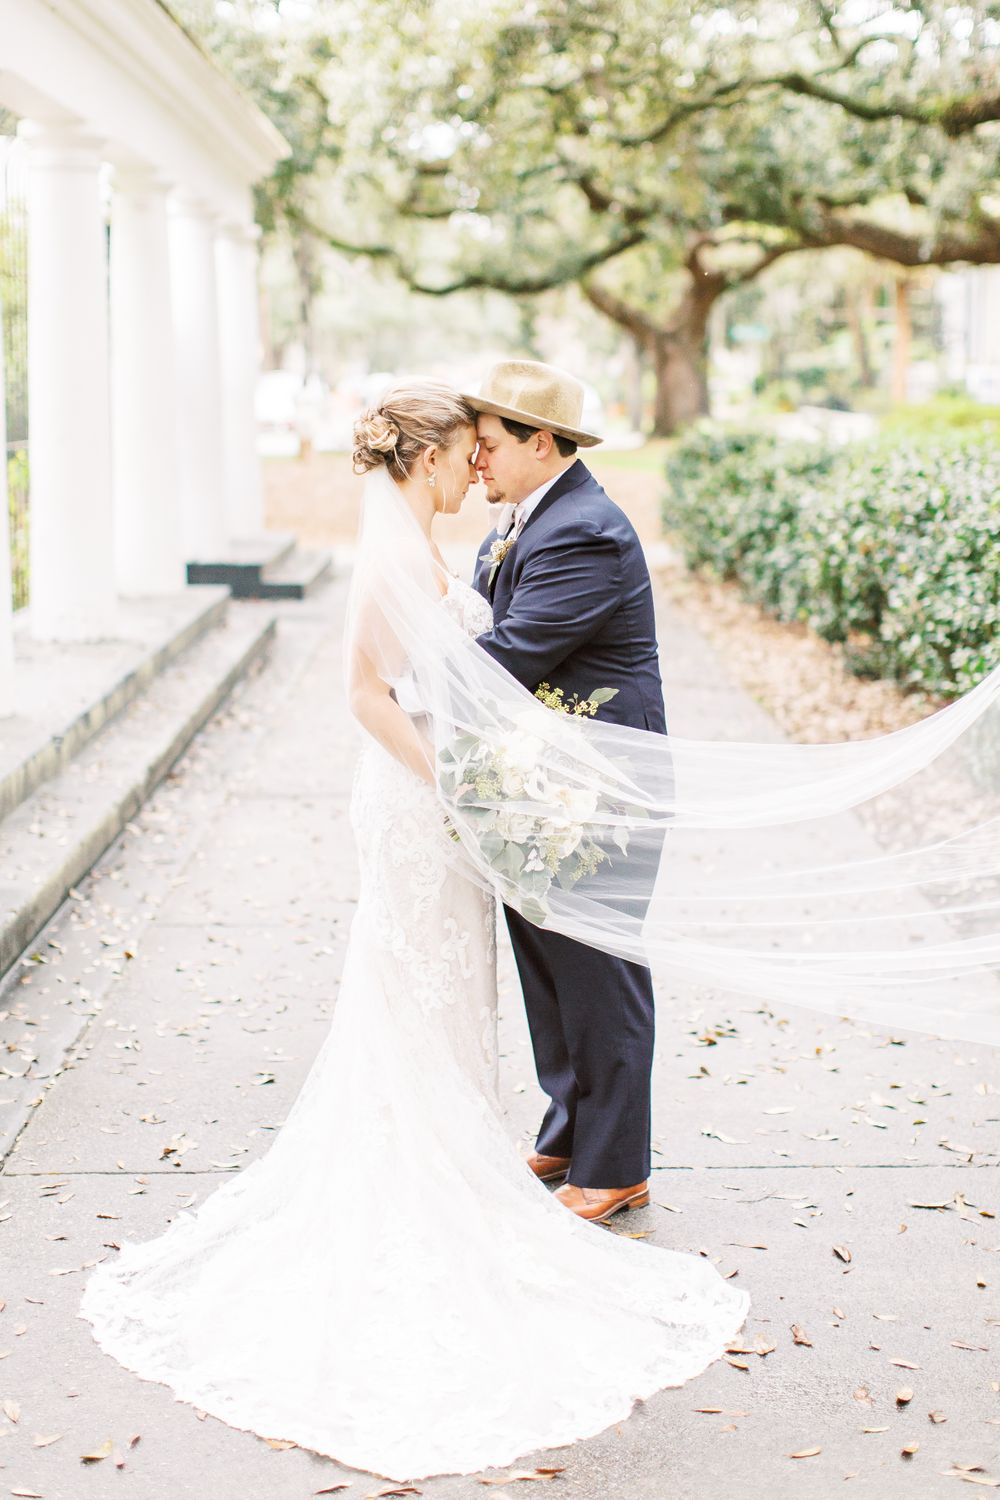 kayley and josh taking couples portraits during their savannah, ga wedding